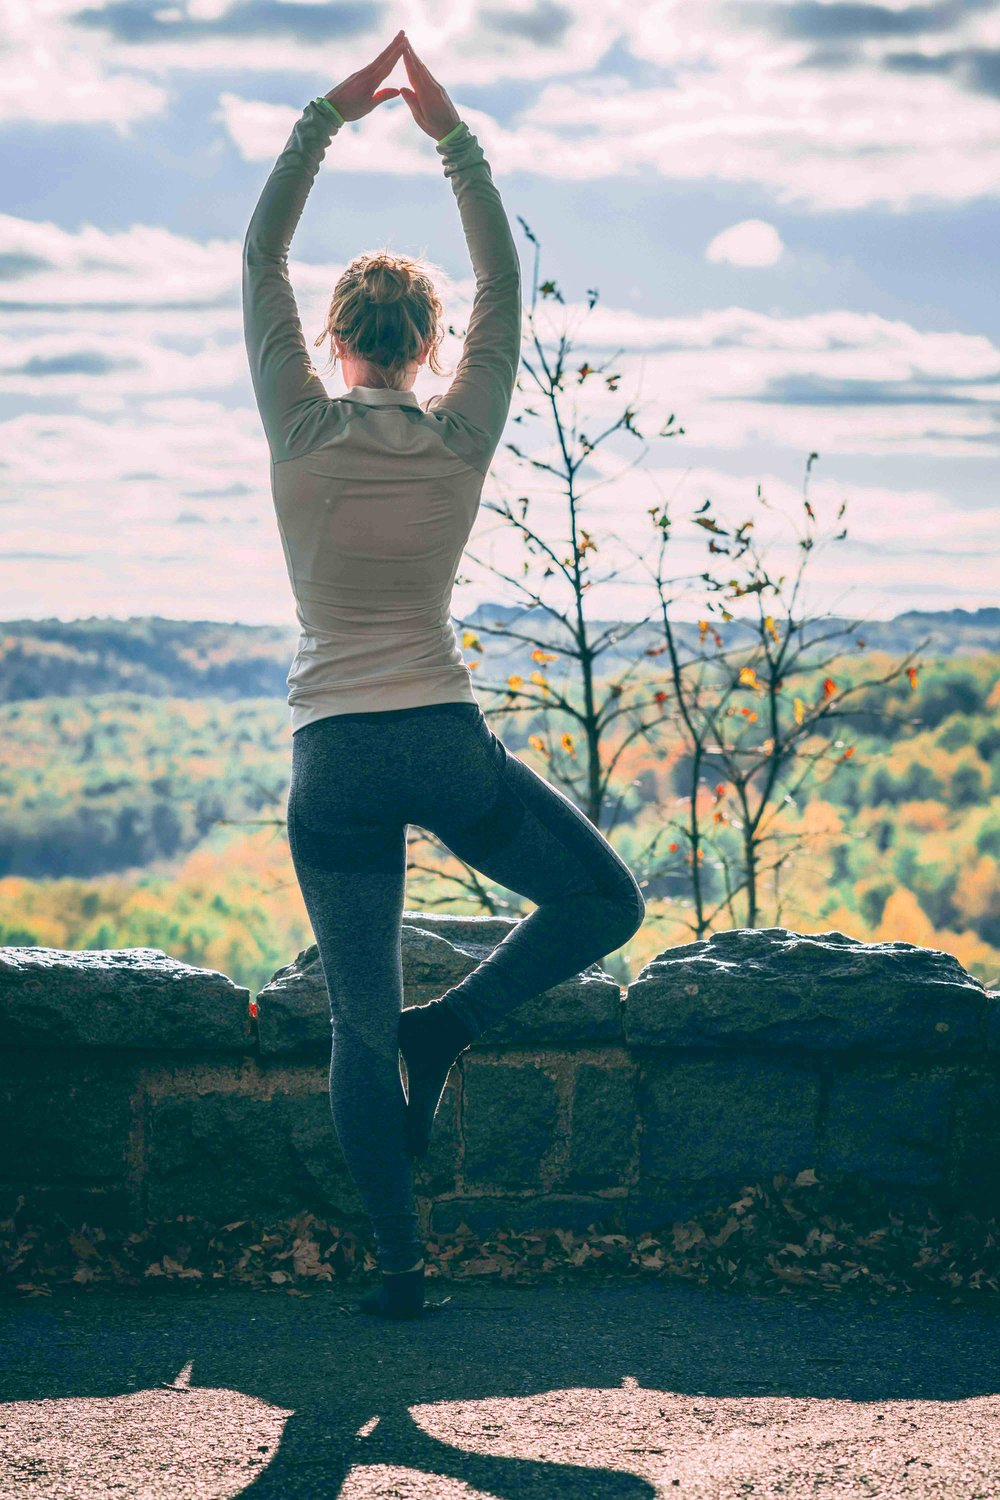 View yoga — Classes meet Mondays and Fridays at 8:30 a.m. and Mondays and Wednesdays at 5:30 p.m. at View in Old Forge.